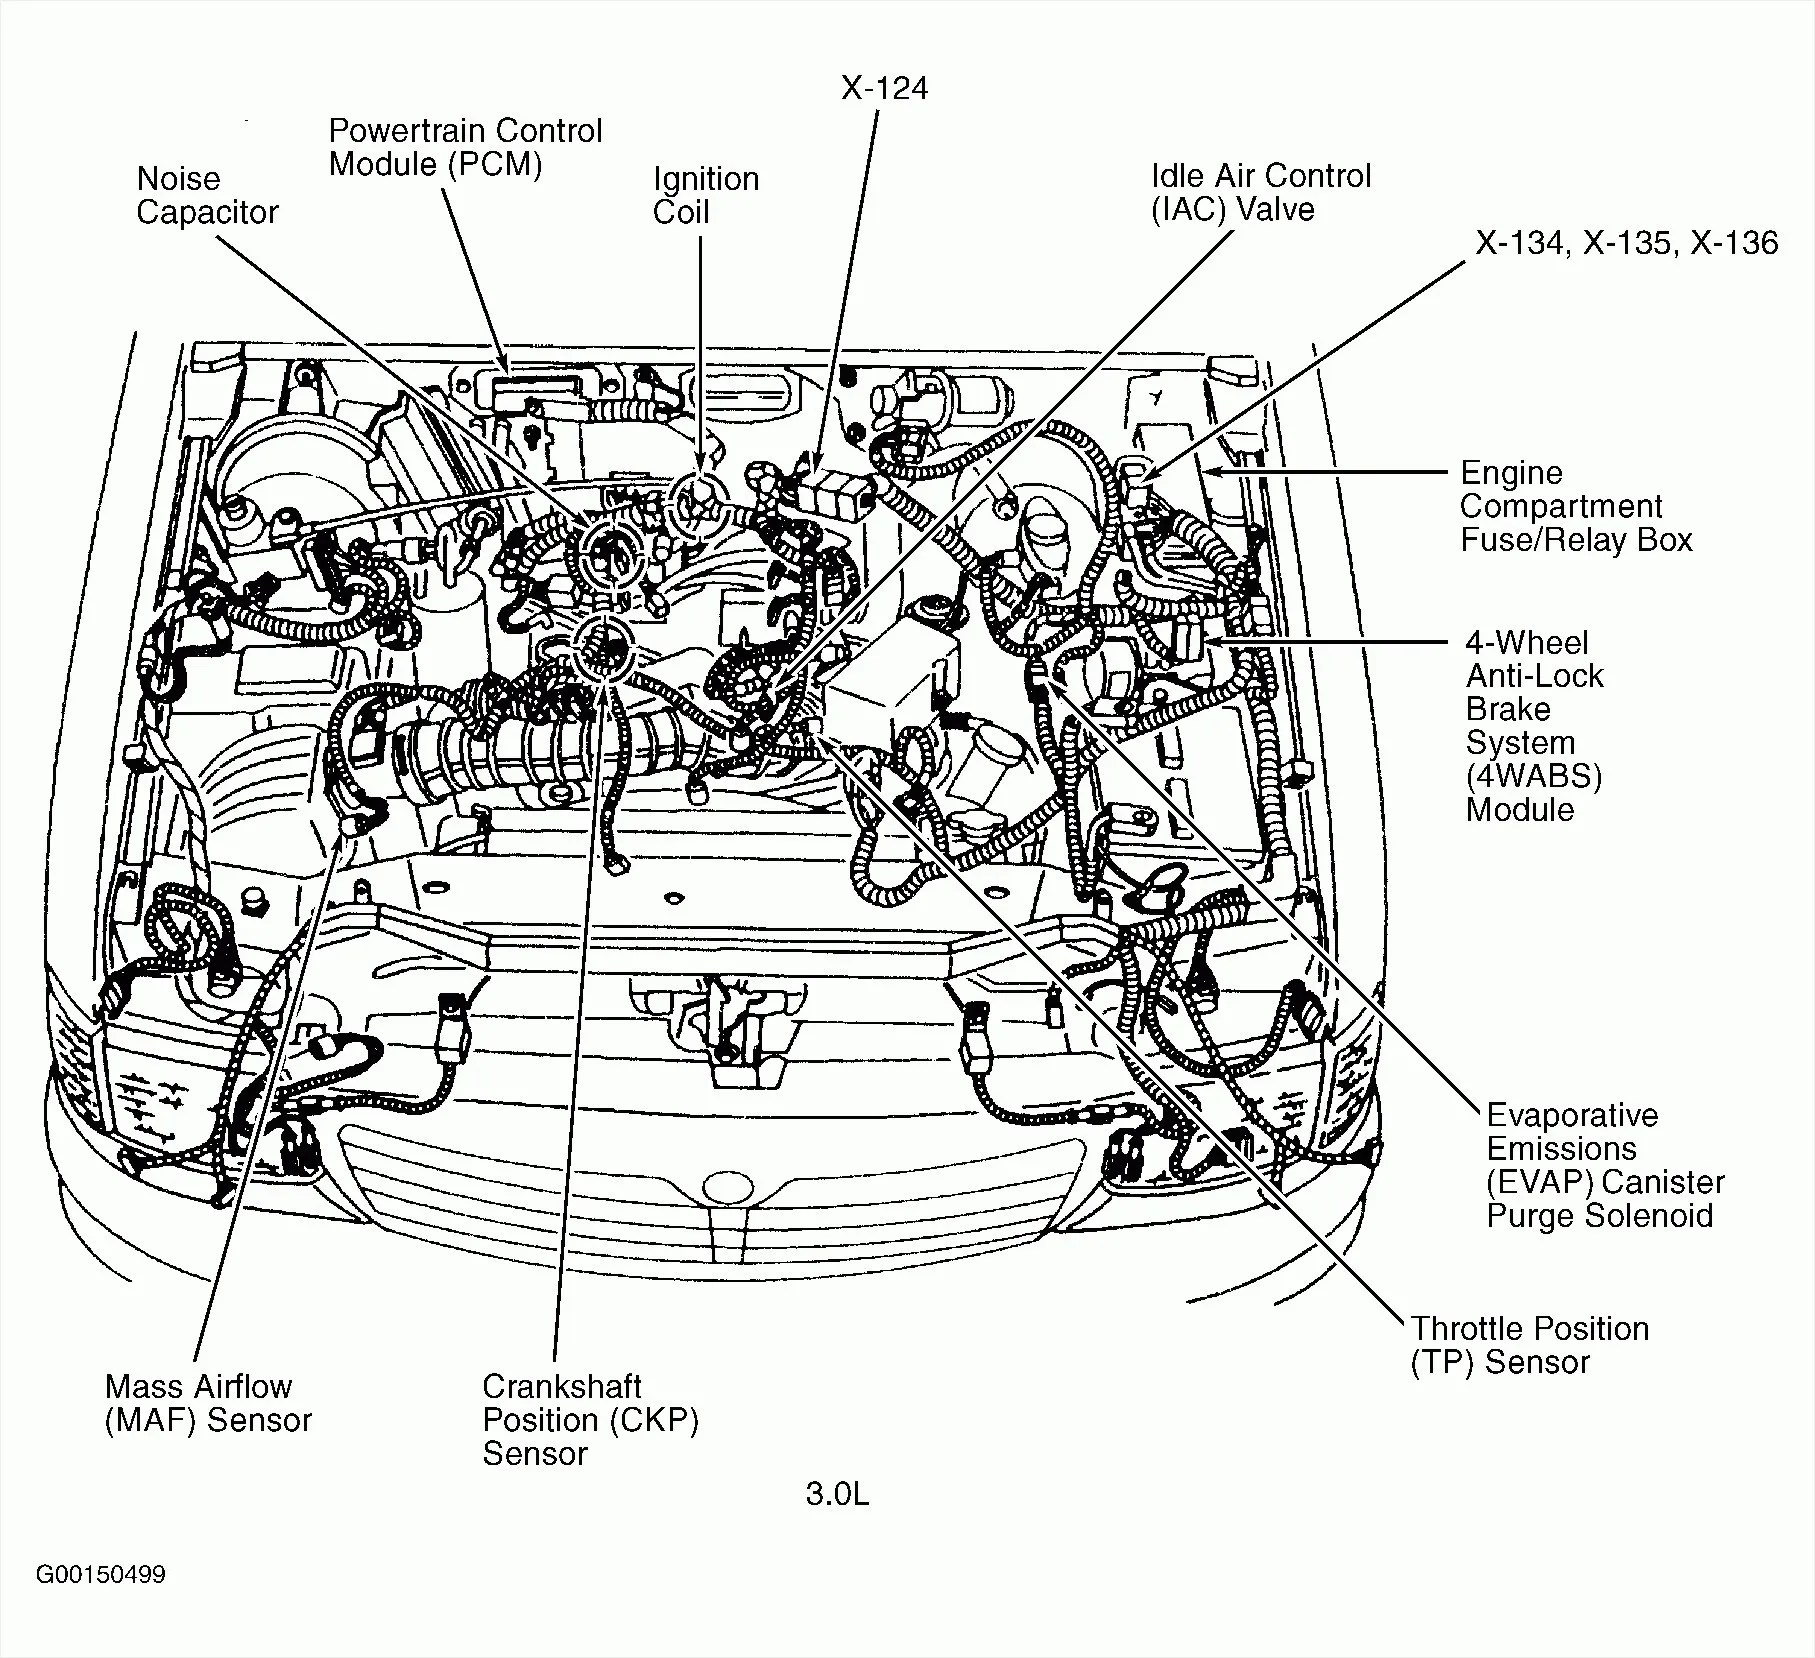 small resolution of hight resolution of 1999 mazda 626 engine diagram wiring diagrams scematic 2000 mazda 626 engine diagram